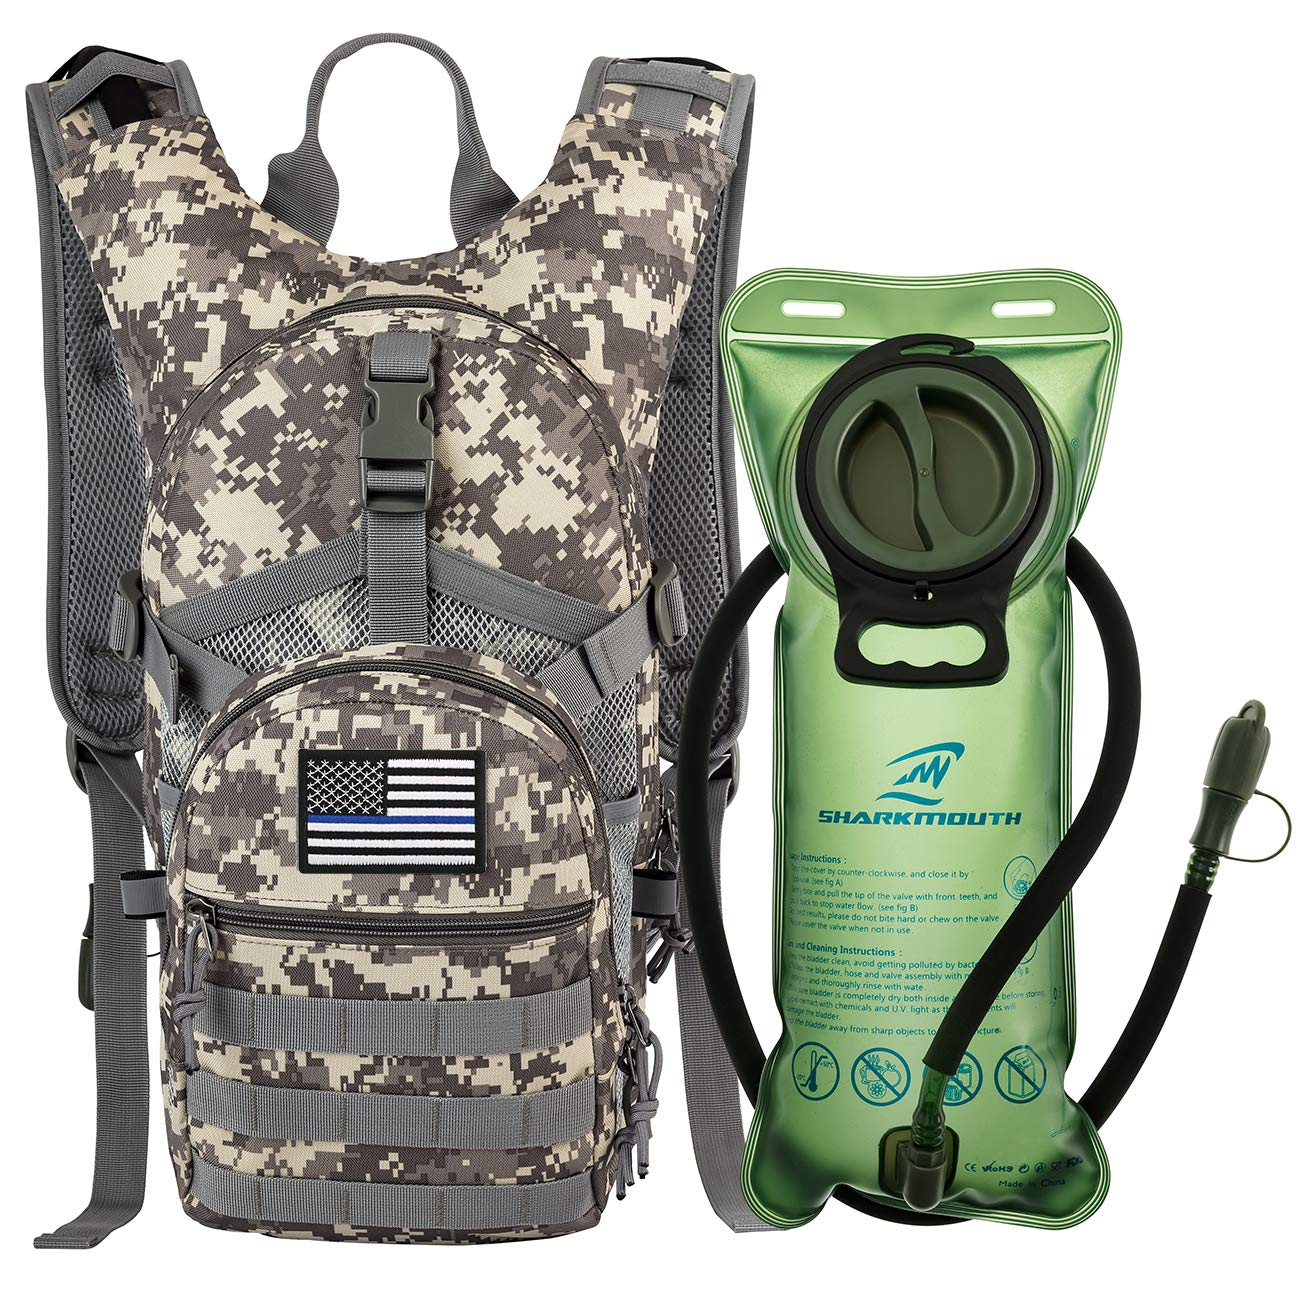 SHARKMOUTH Tactical MOLLE Hydration Pack Backpack 900D with 2L Leak-Proof Water Bladder, Keep Liquids Cool for Up to 4 Hours, Outdoor Daypack for Hiking, Running, USA Flag Patch, Camo by SHARKMOUTH